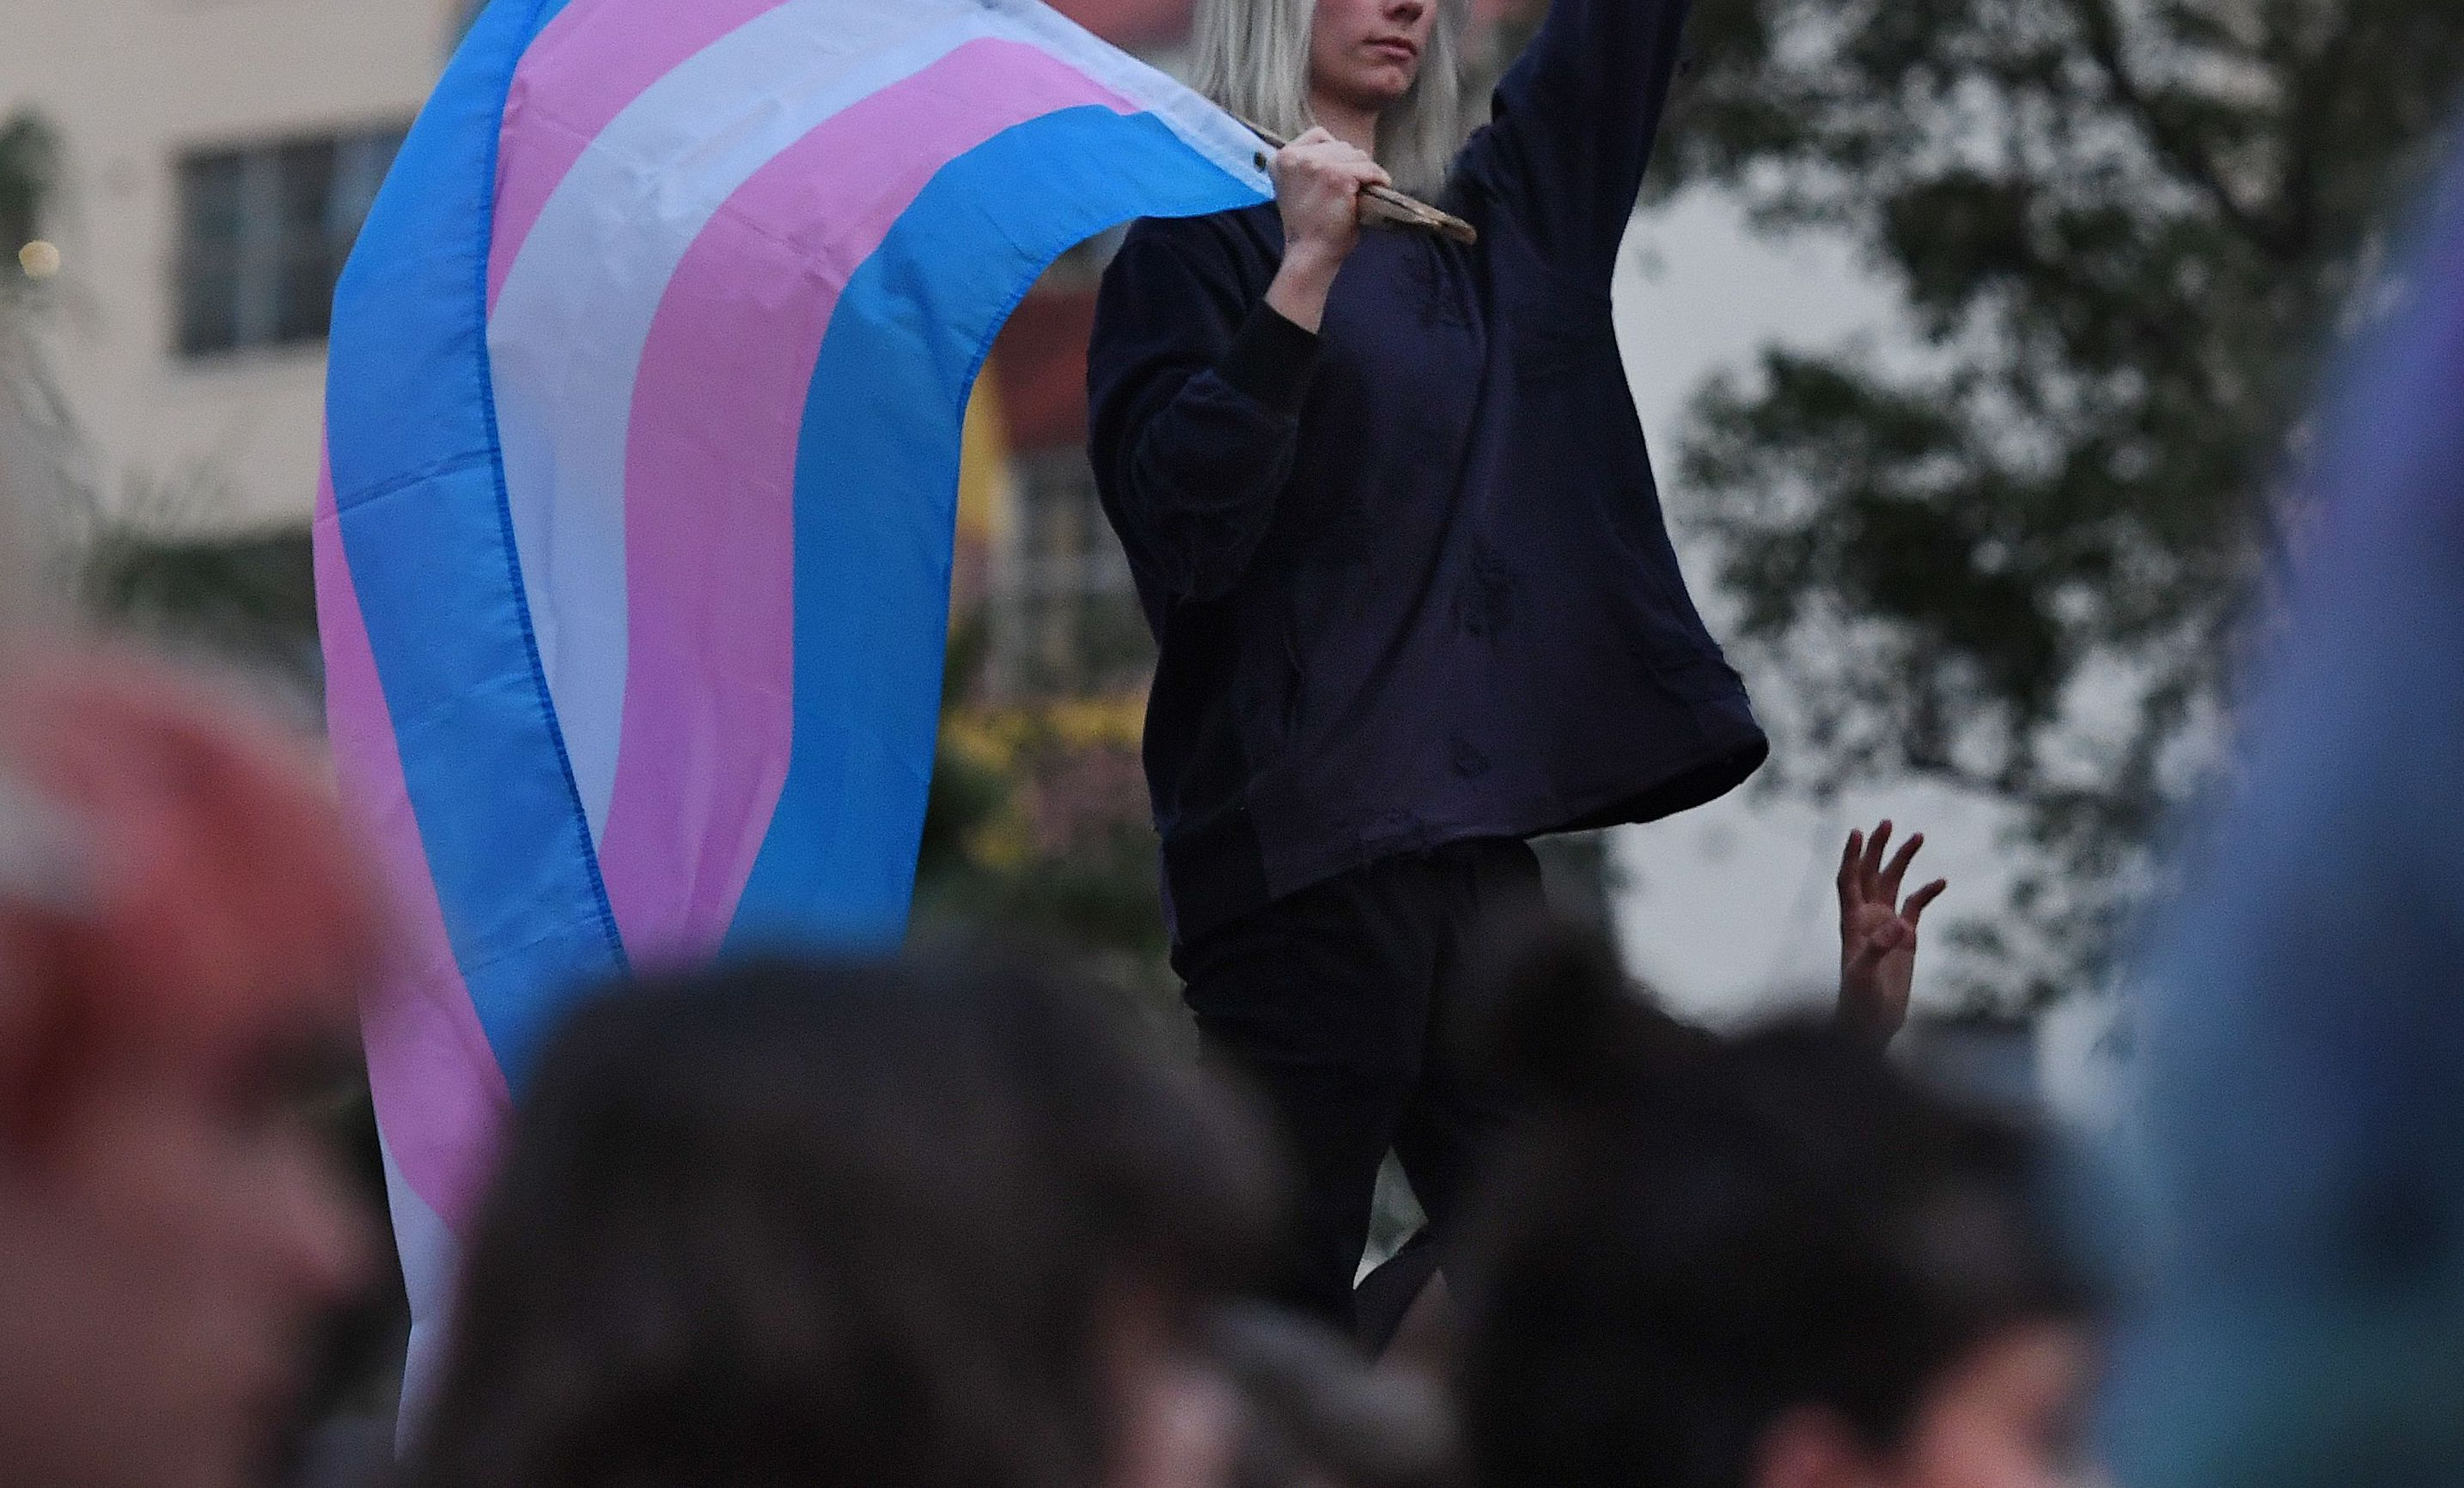 Members of the transgender community and their supporters hold a rally and march in Los Angeles, California on Nov. 2, 2018.